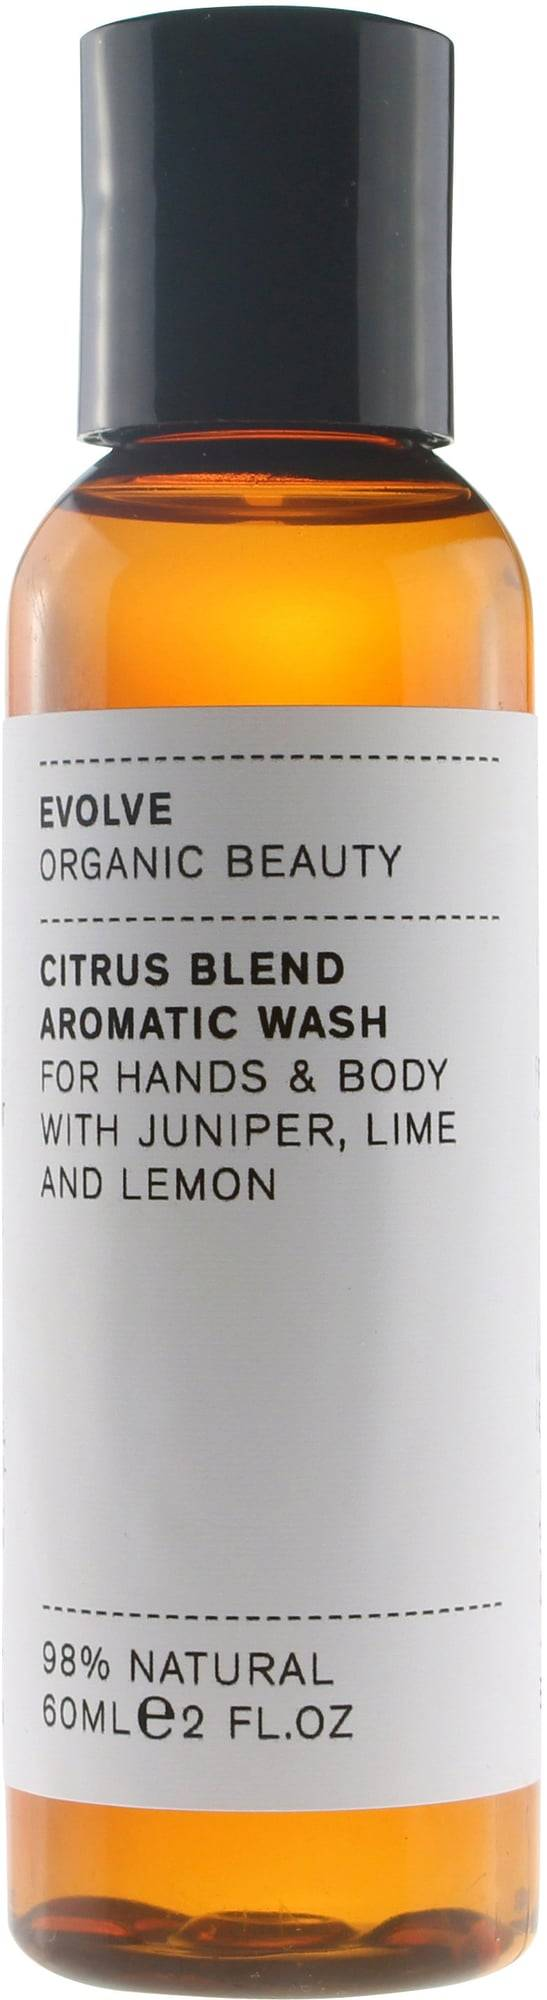 Evolve Organic Beauty Citrus Blend Aromatic nestesaippua - 60 ml